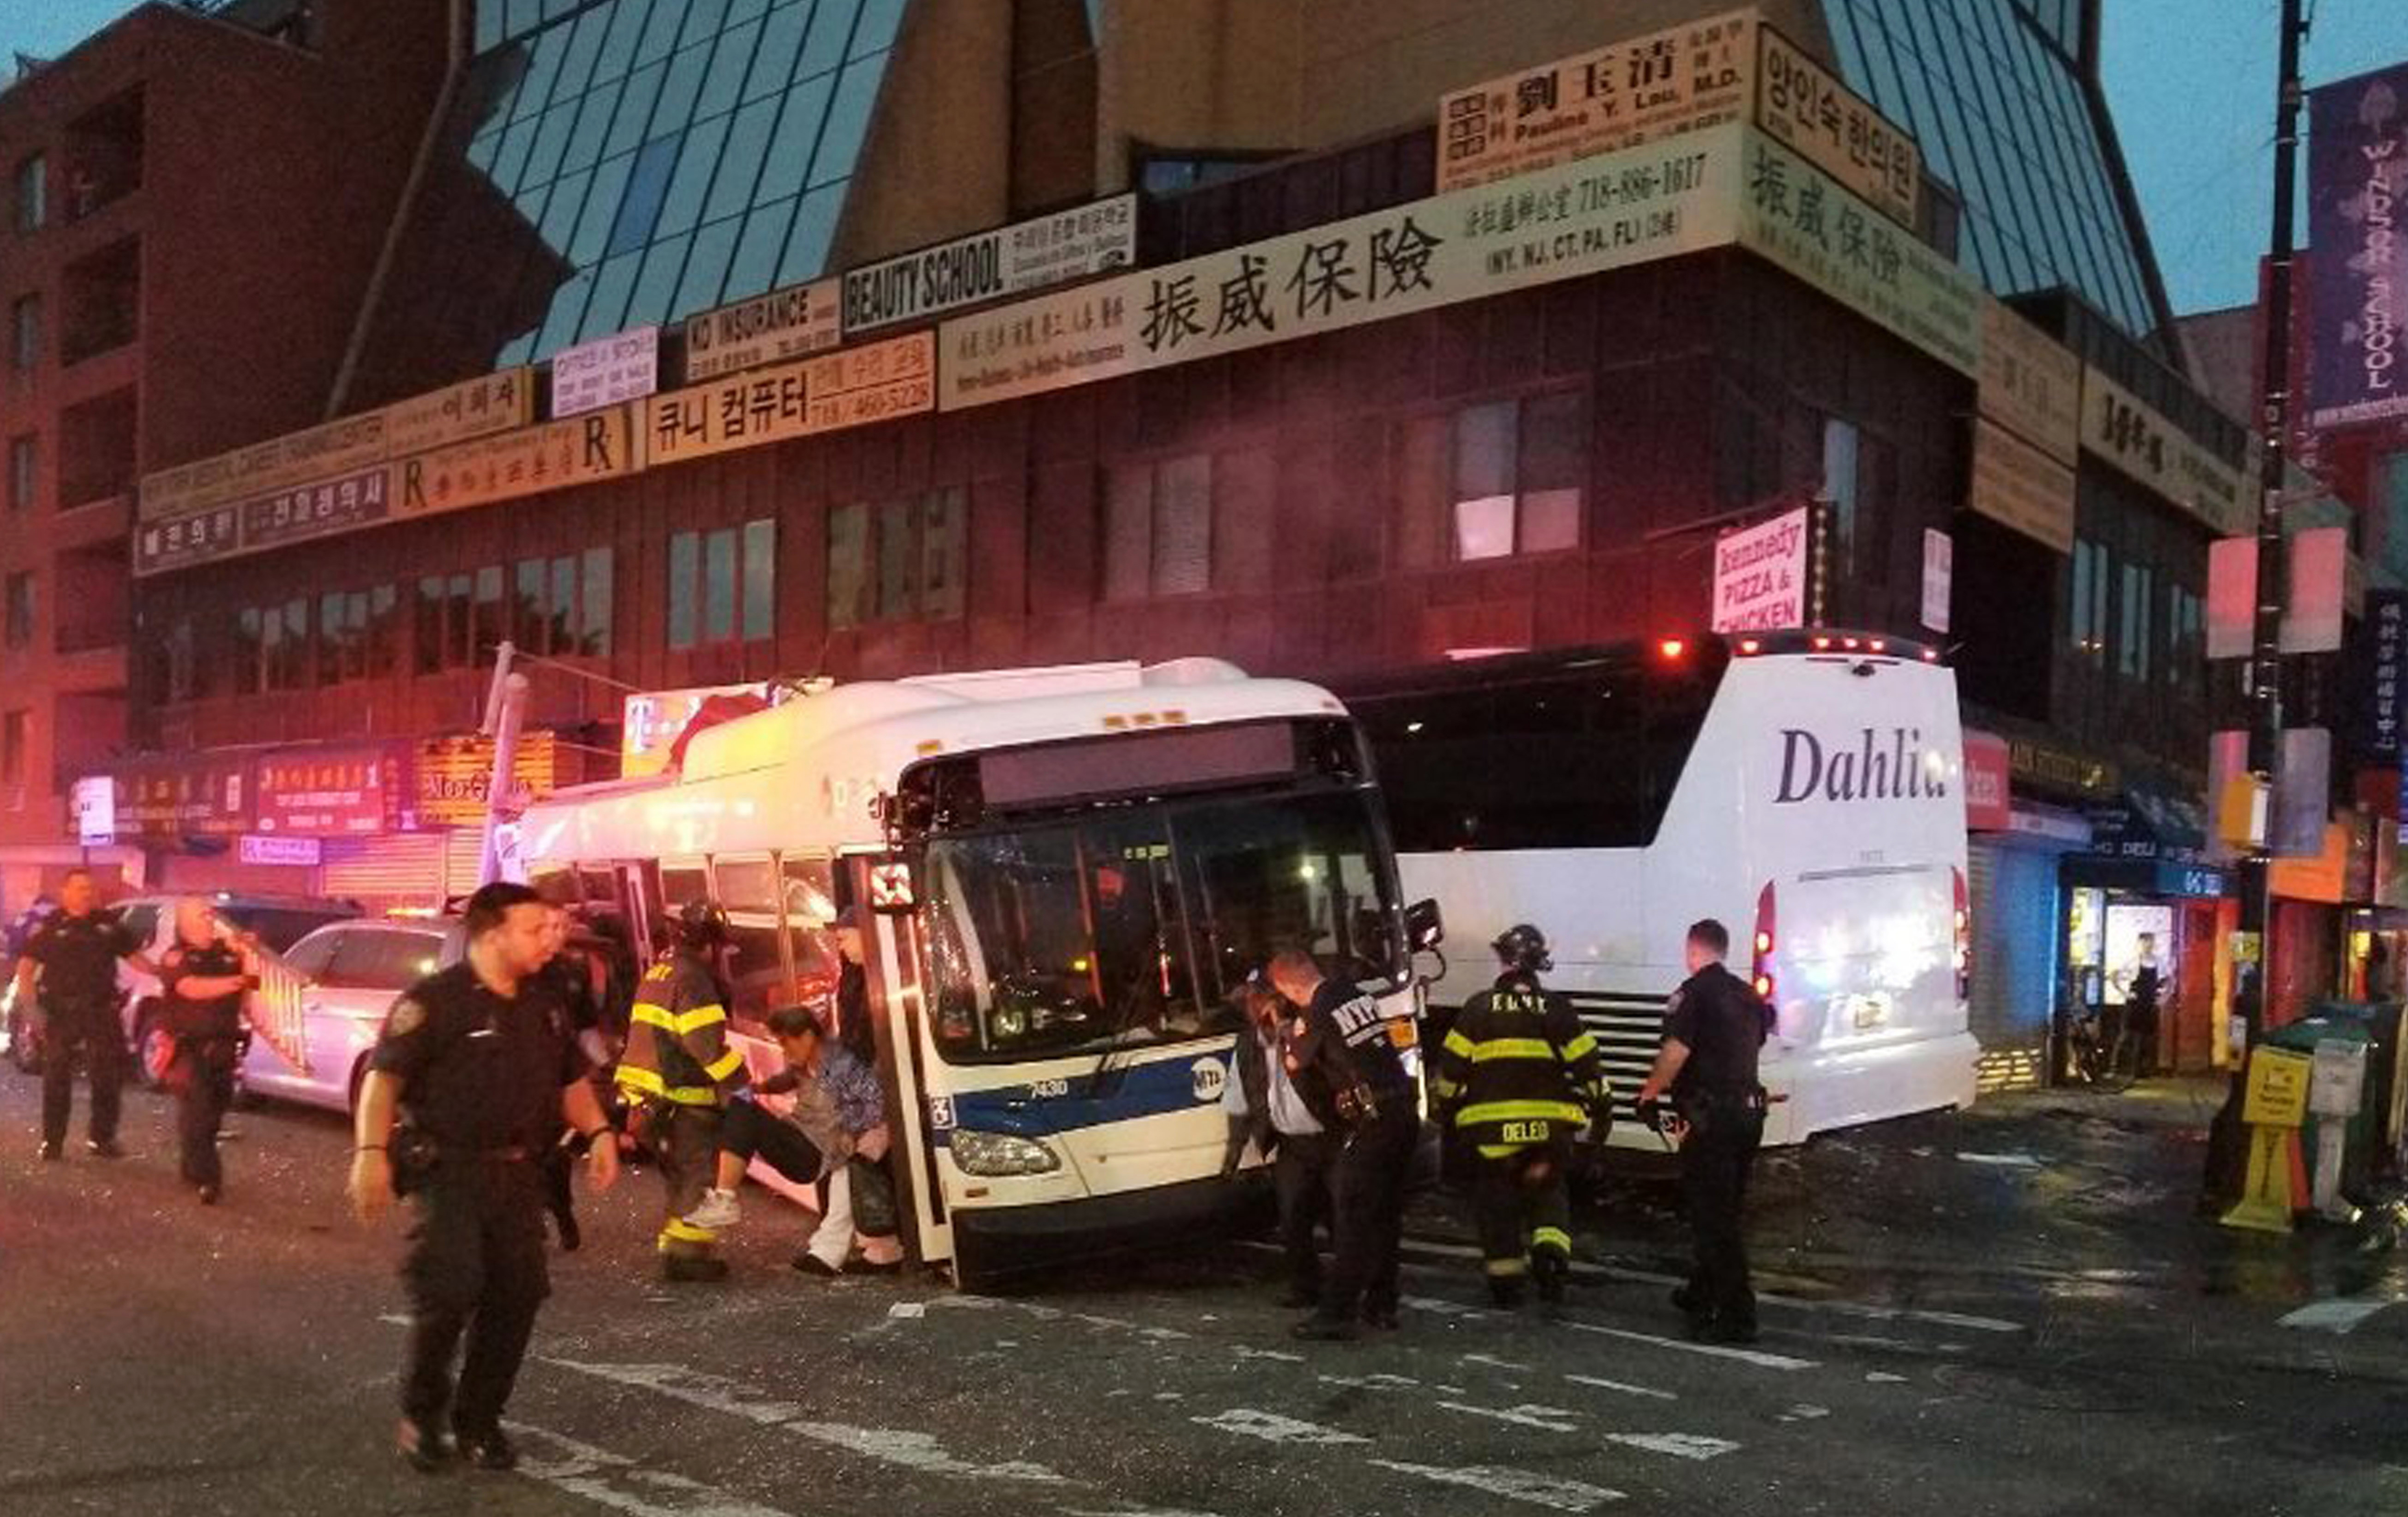 FILE - In this Monday, Sept. 18, 2017 photo provided by the NYPD's 109th Precinct, officers respond to a collision involving two buses on Main Street in the Queens borough of New York.  Federal safety investigators say a freak accident involving a dropped thermos may have caused a bus crash that killed three people in New York City. The National Transportation Safety Board released its report Thursday, Feb. 21, 2019.  The incident occurred when a charter bus blew threw a Queens intersection at 60 mph, slammed into a city bus, barreled across a sidewalk and hit a building. The charter bus driver, a city bus passenger and a pedestrian were killed.  (NYPD's 109th Precinct via AP, File)